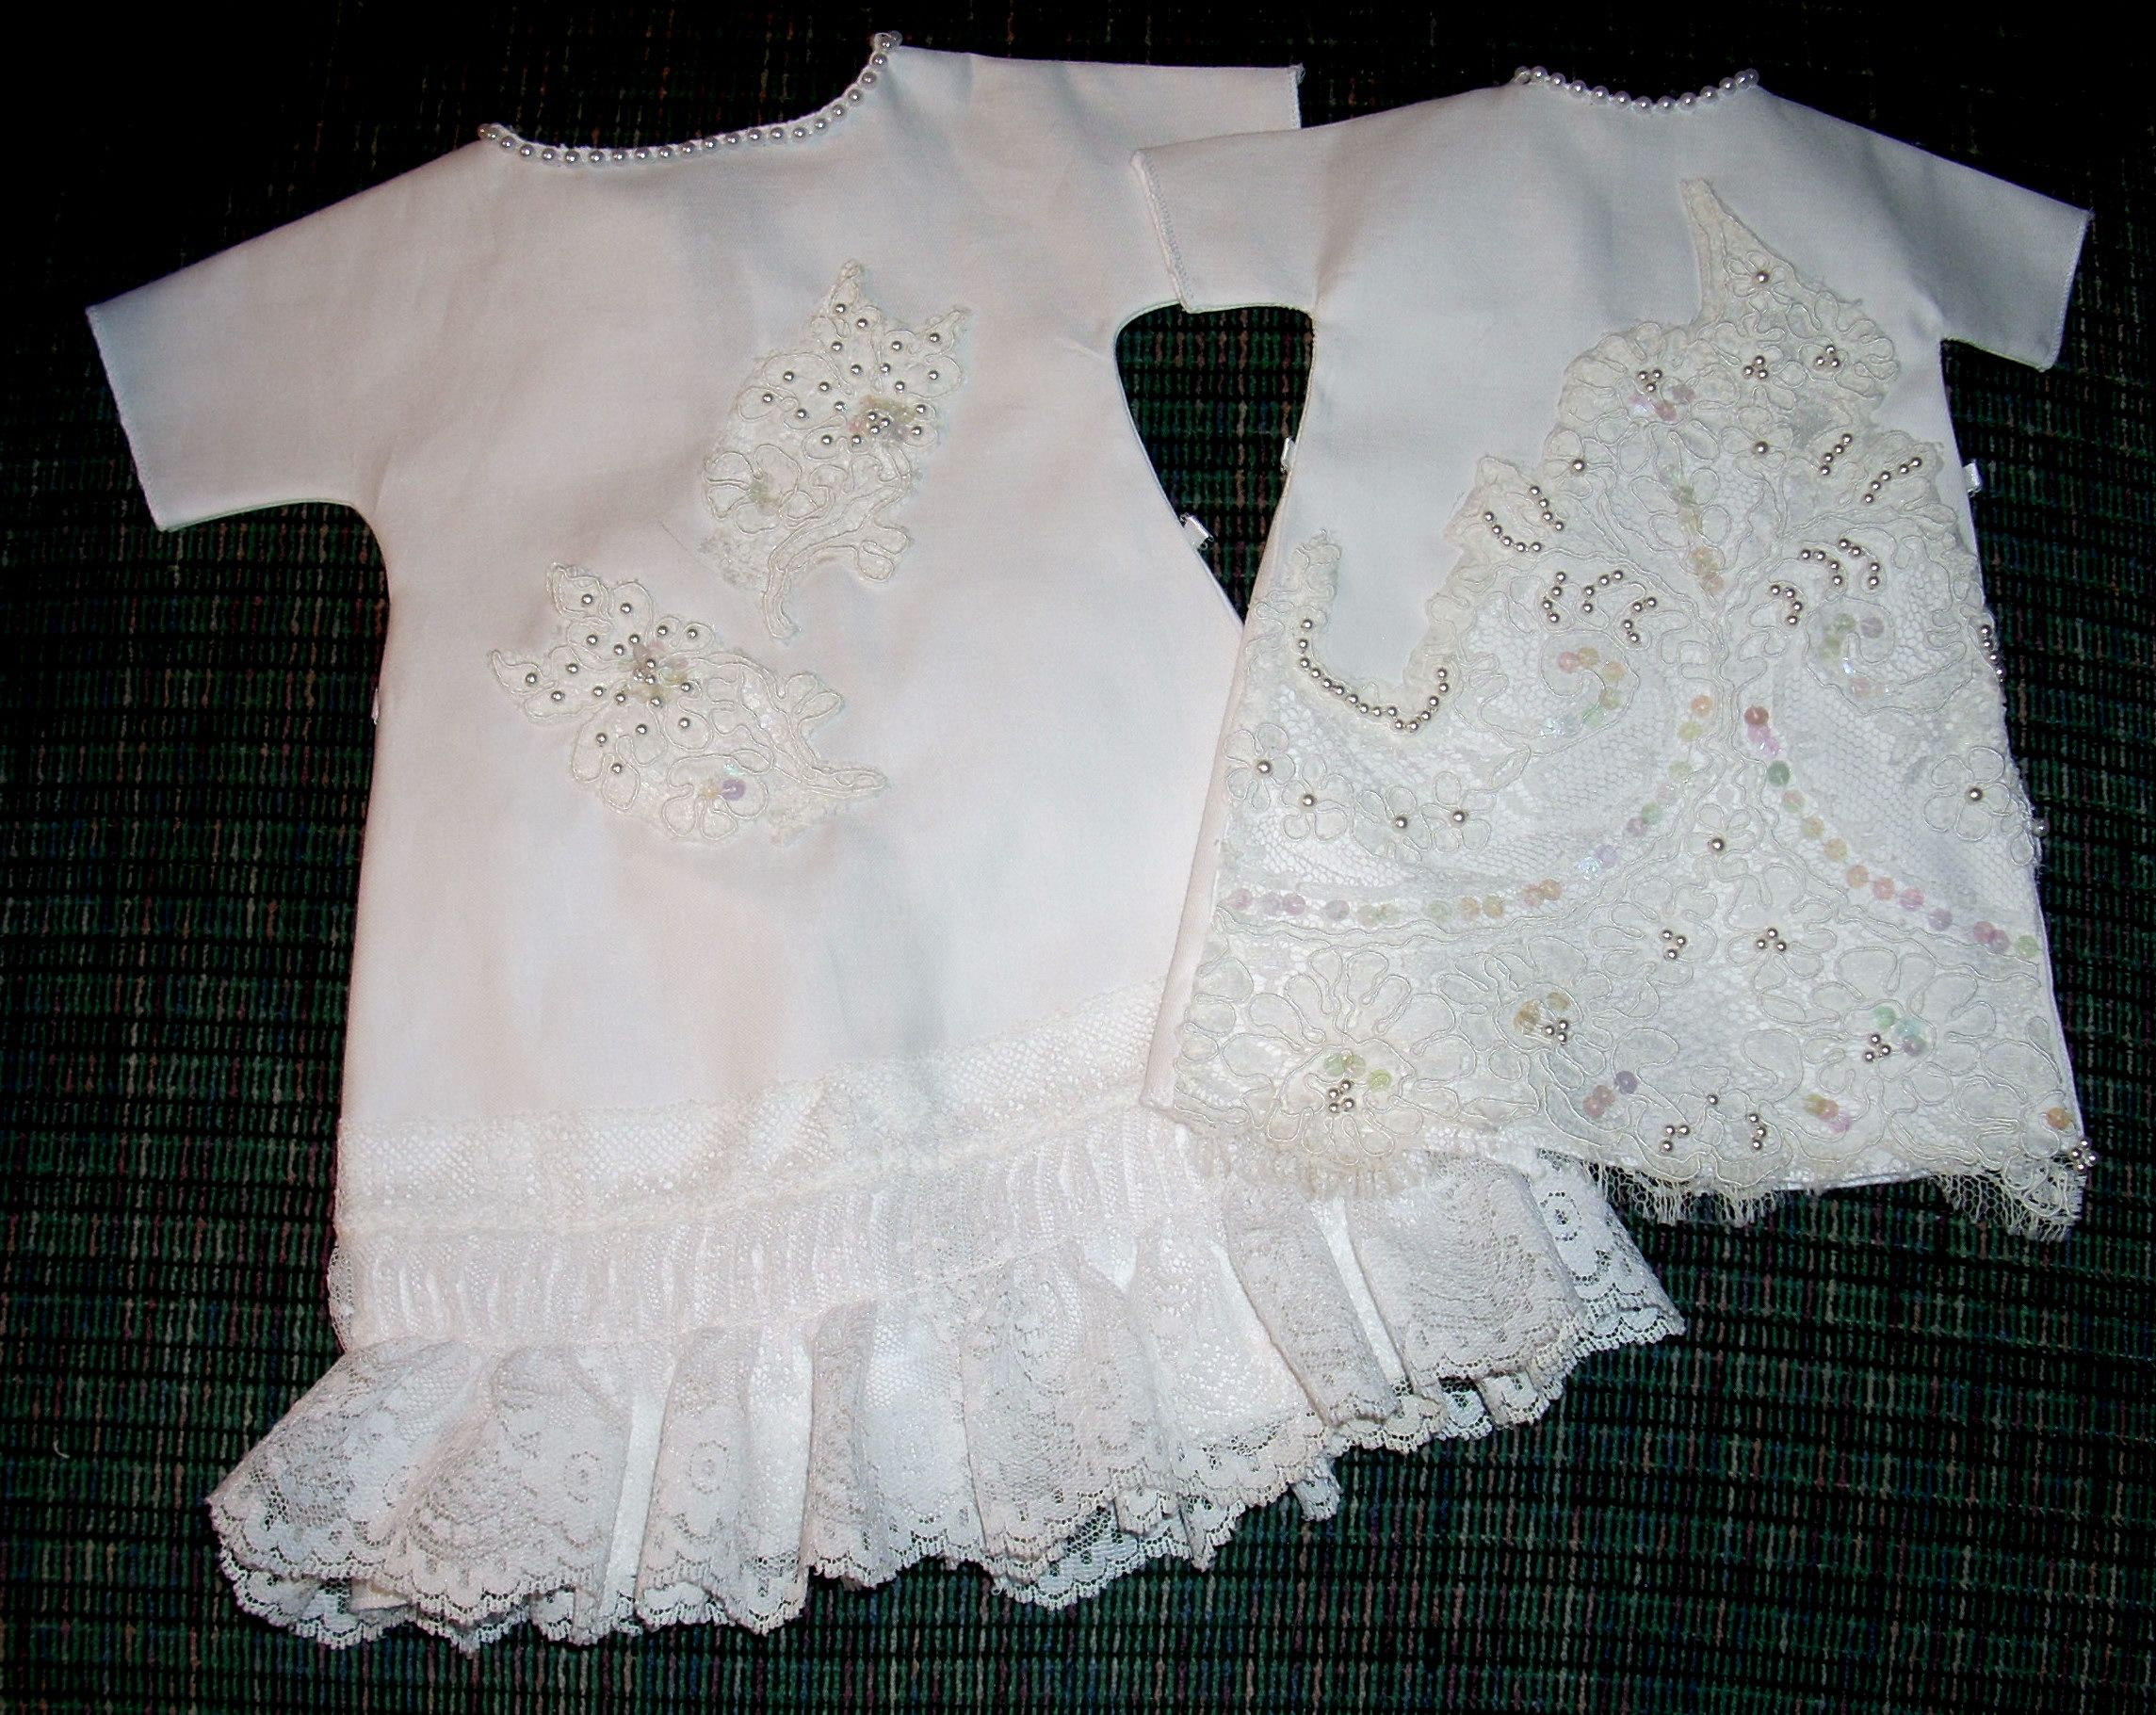 Angel Gowns - made from a donated wedding gown for NICU Helping ...